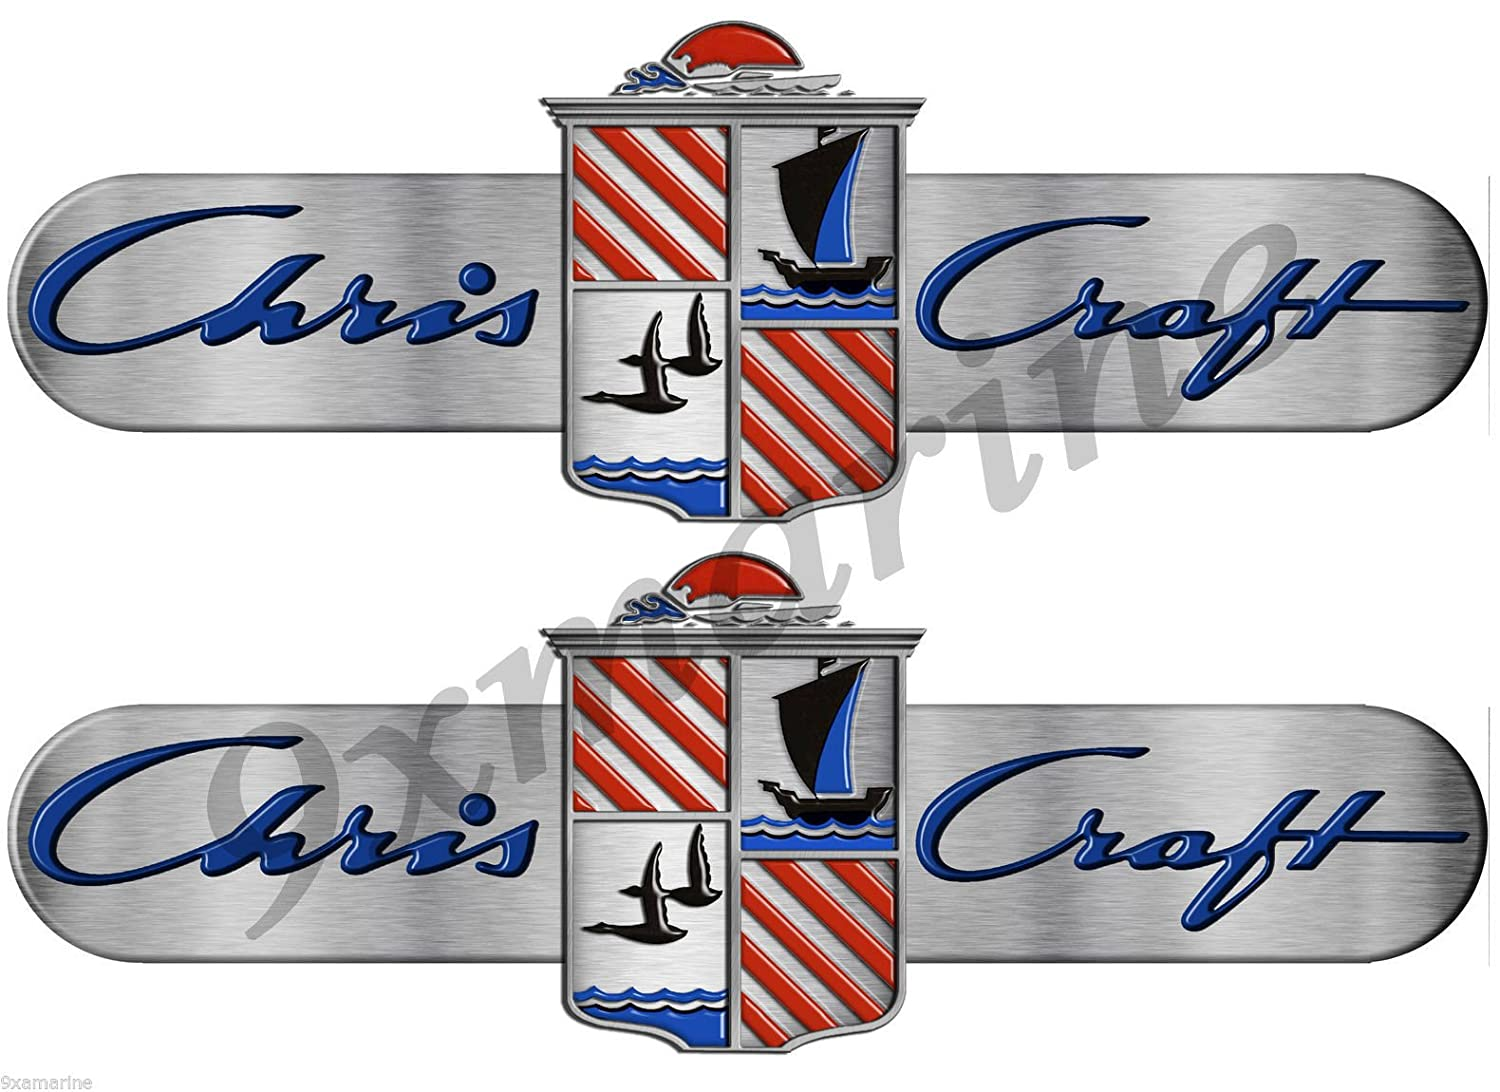 Amazon com chris craft custom decals stickers brushed metal look 10 long remastered automotive